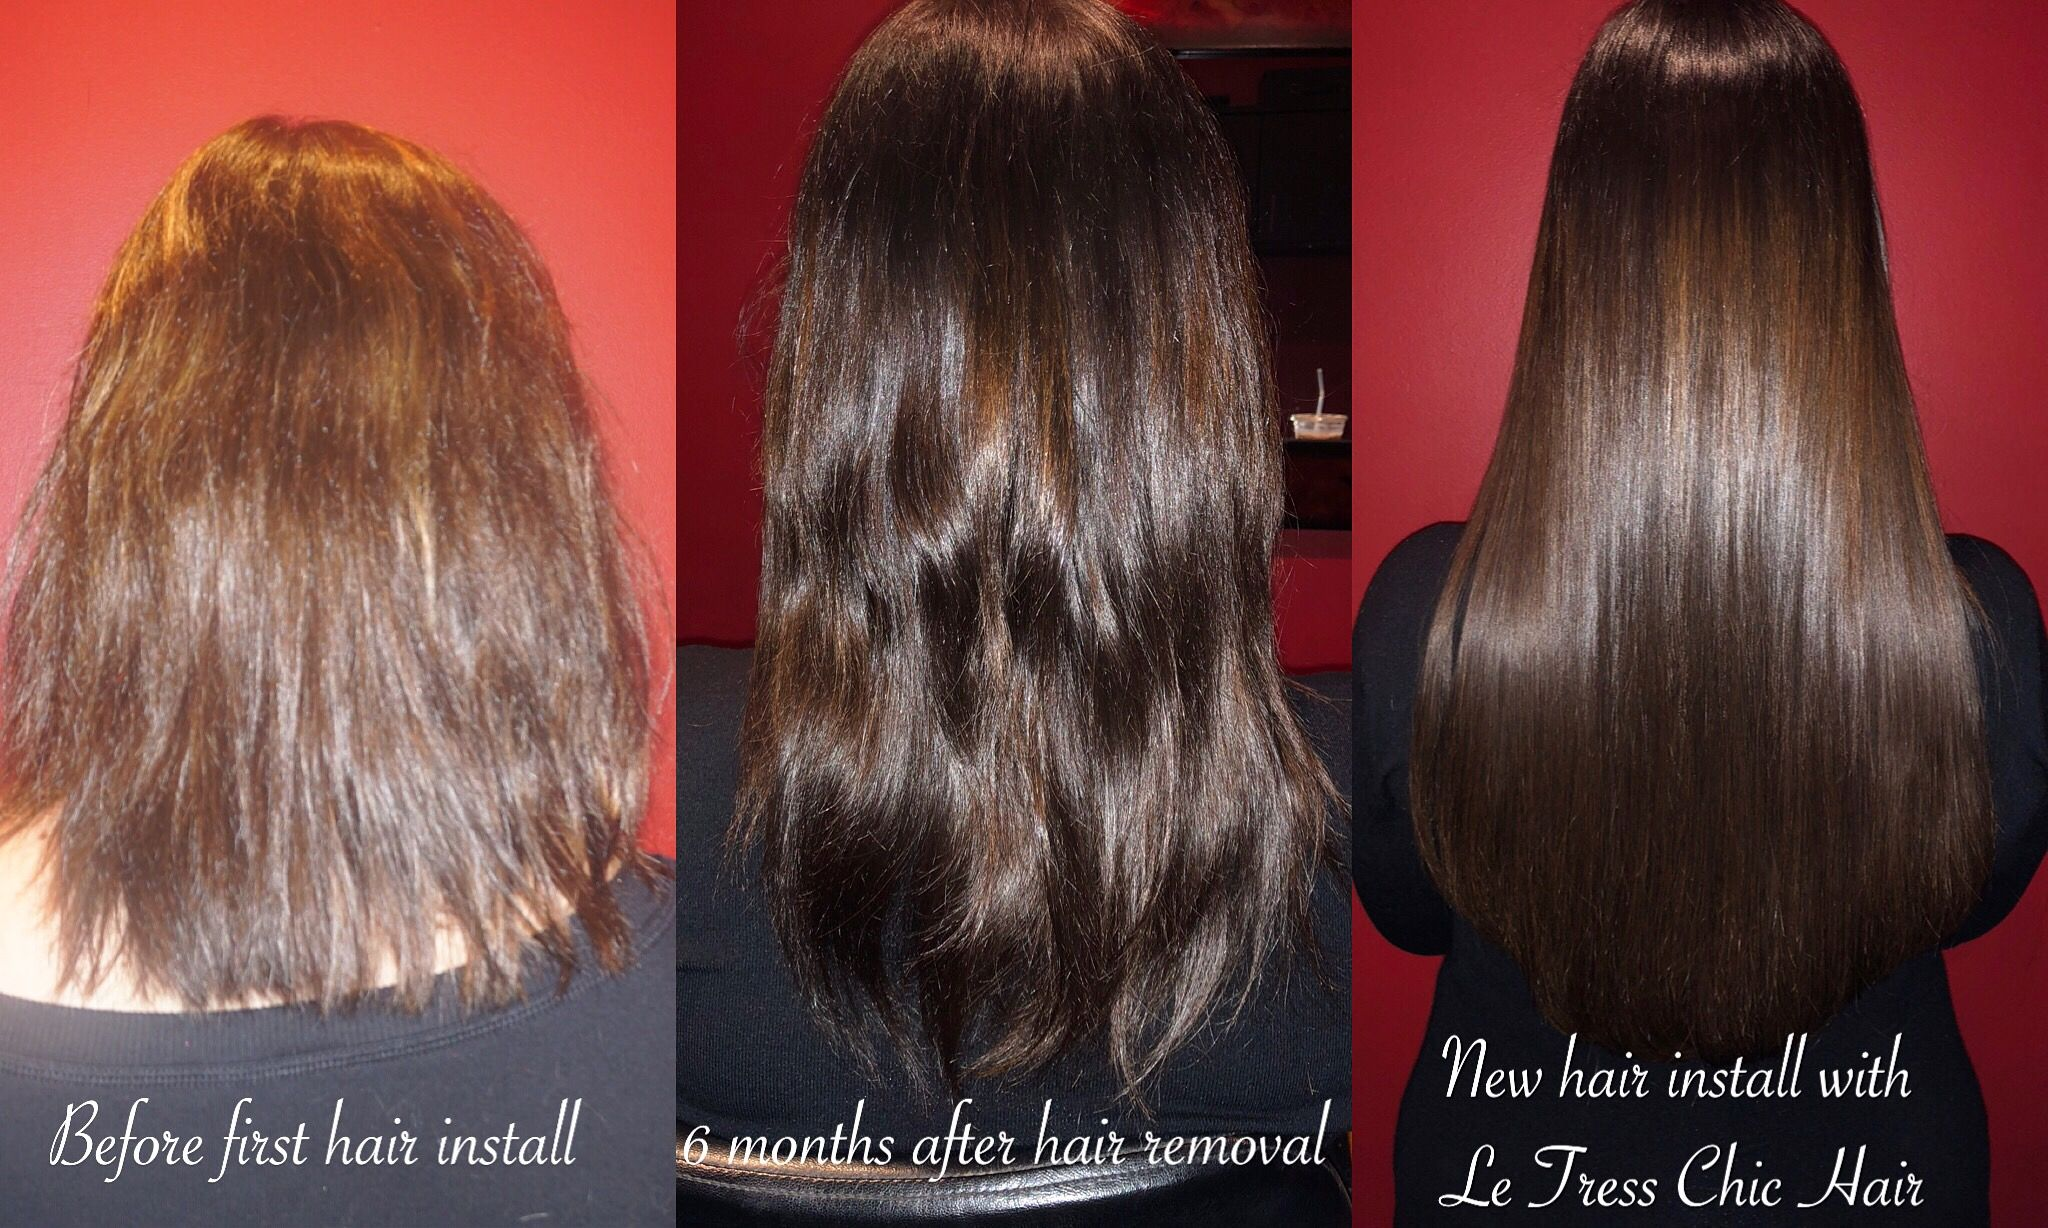 Heres A Progression Picture That Show That Your Hair Can Grow After